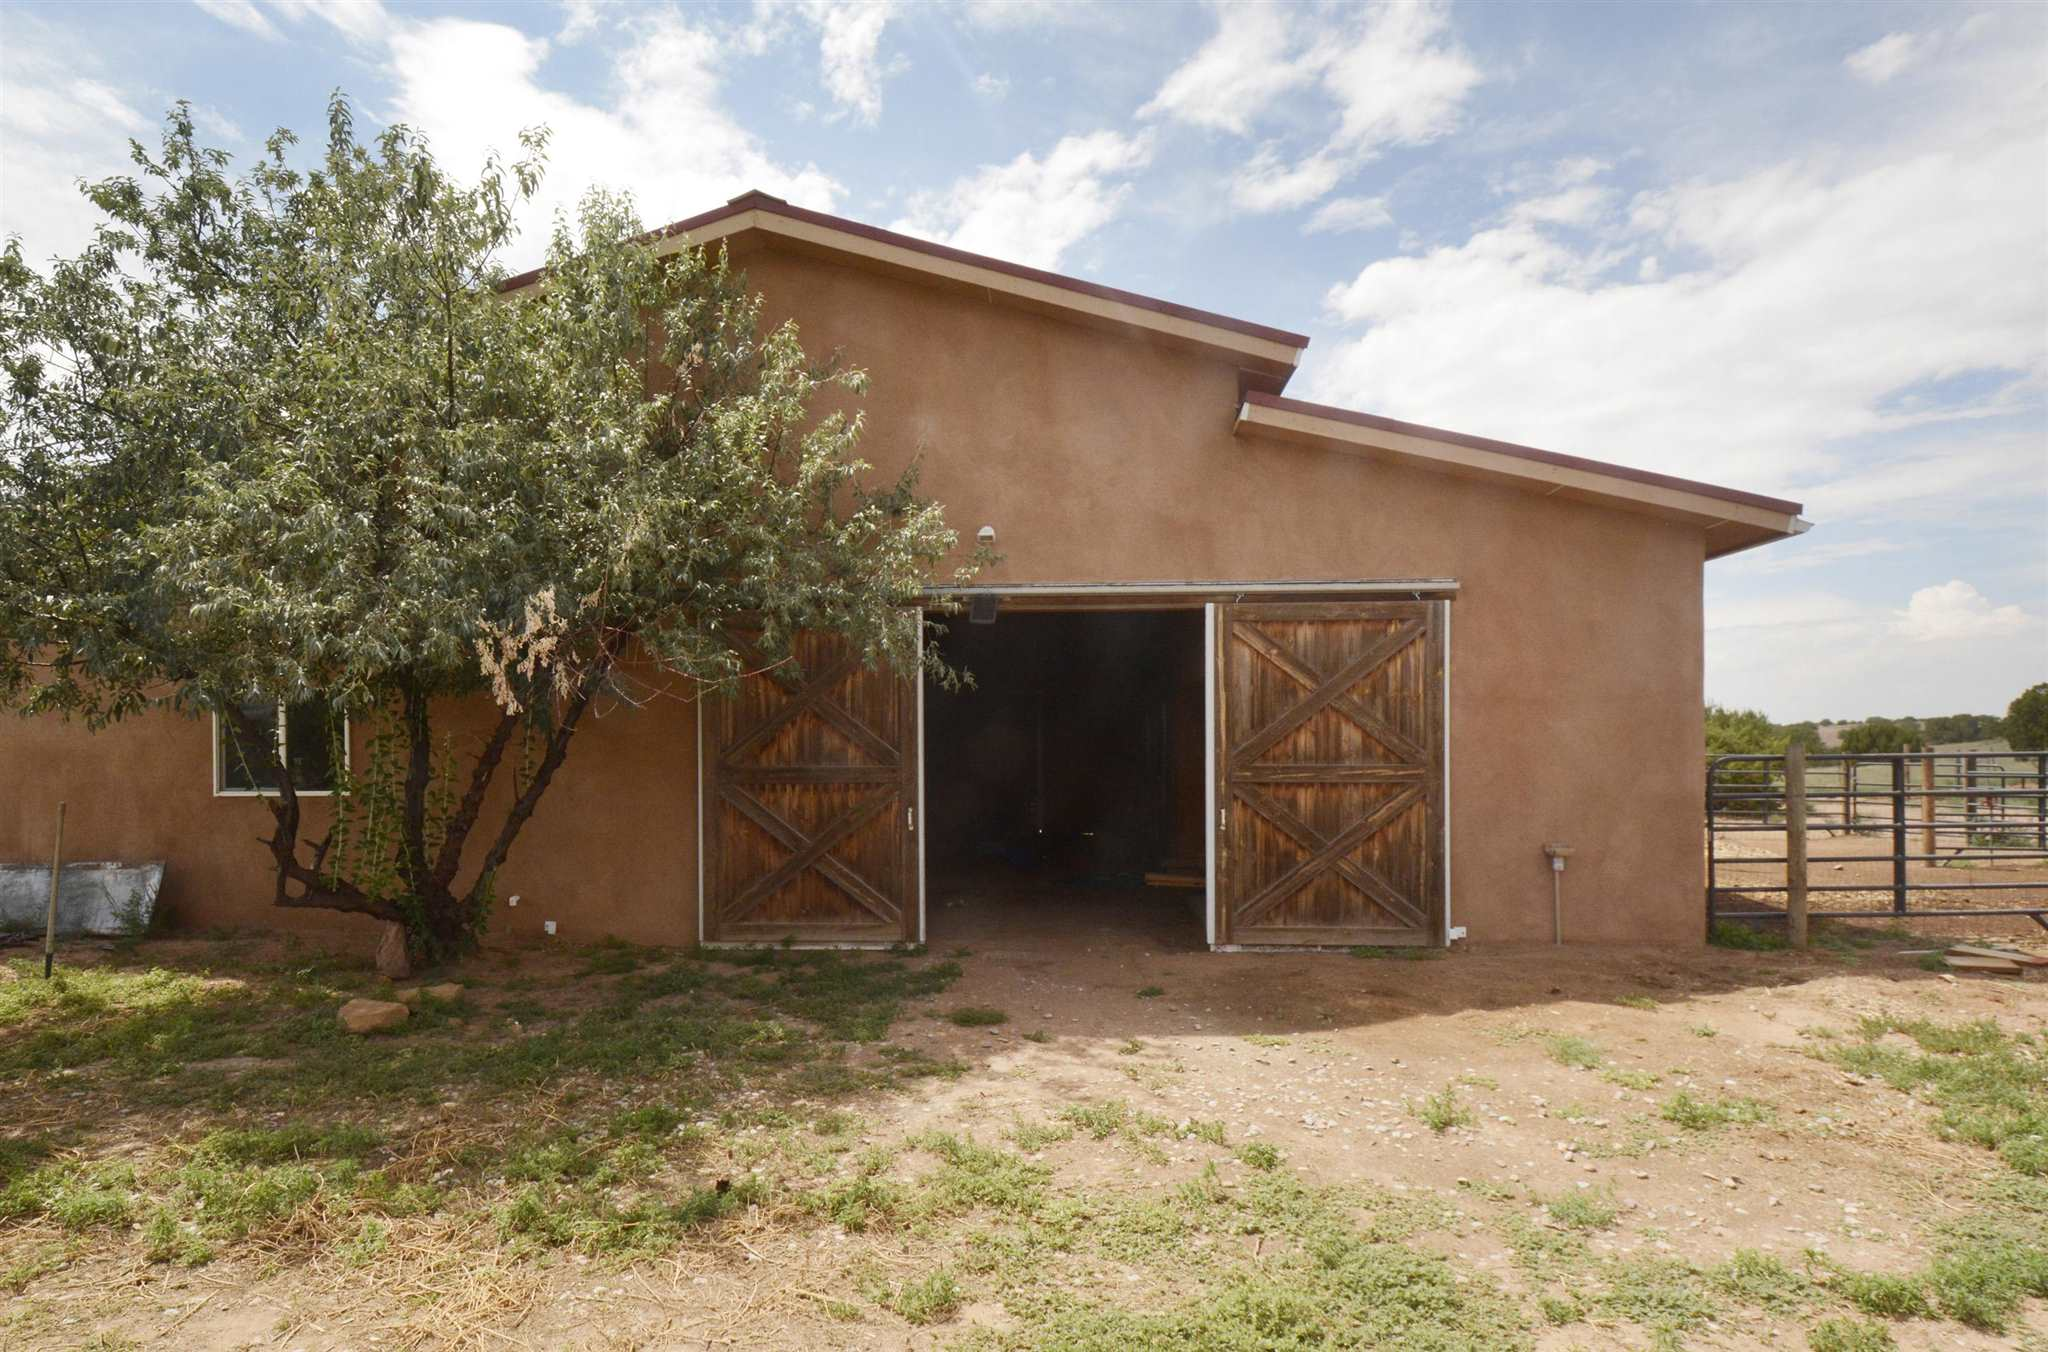 ALL one may want and need for a horse property or family home in the country. 12.5 fully fenced acres provides room to move, stretch and play. 360 degree views afford beautiful New Mexico undisturbed sunrises and sunsets. Ride, hike, bike directly from the property A 1902 sqf home with Saltillo tile throughout, beams and a kiva fire place complete the properties perfection. Comfortable comfortable spaces.  Beautiful pitched roof custom barn (1450 sqf) for horses, shop, studio, or future guesthouse. The possibilities of making this place your dream existence are endless. 25 min. from the Santa Fe Plaza.